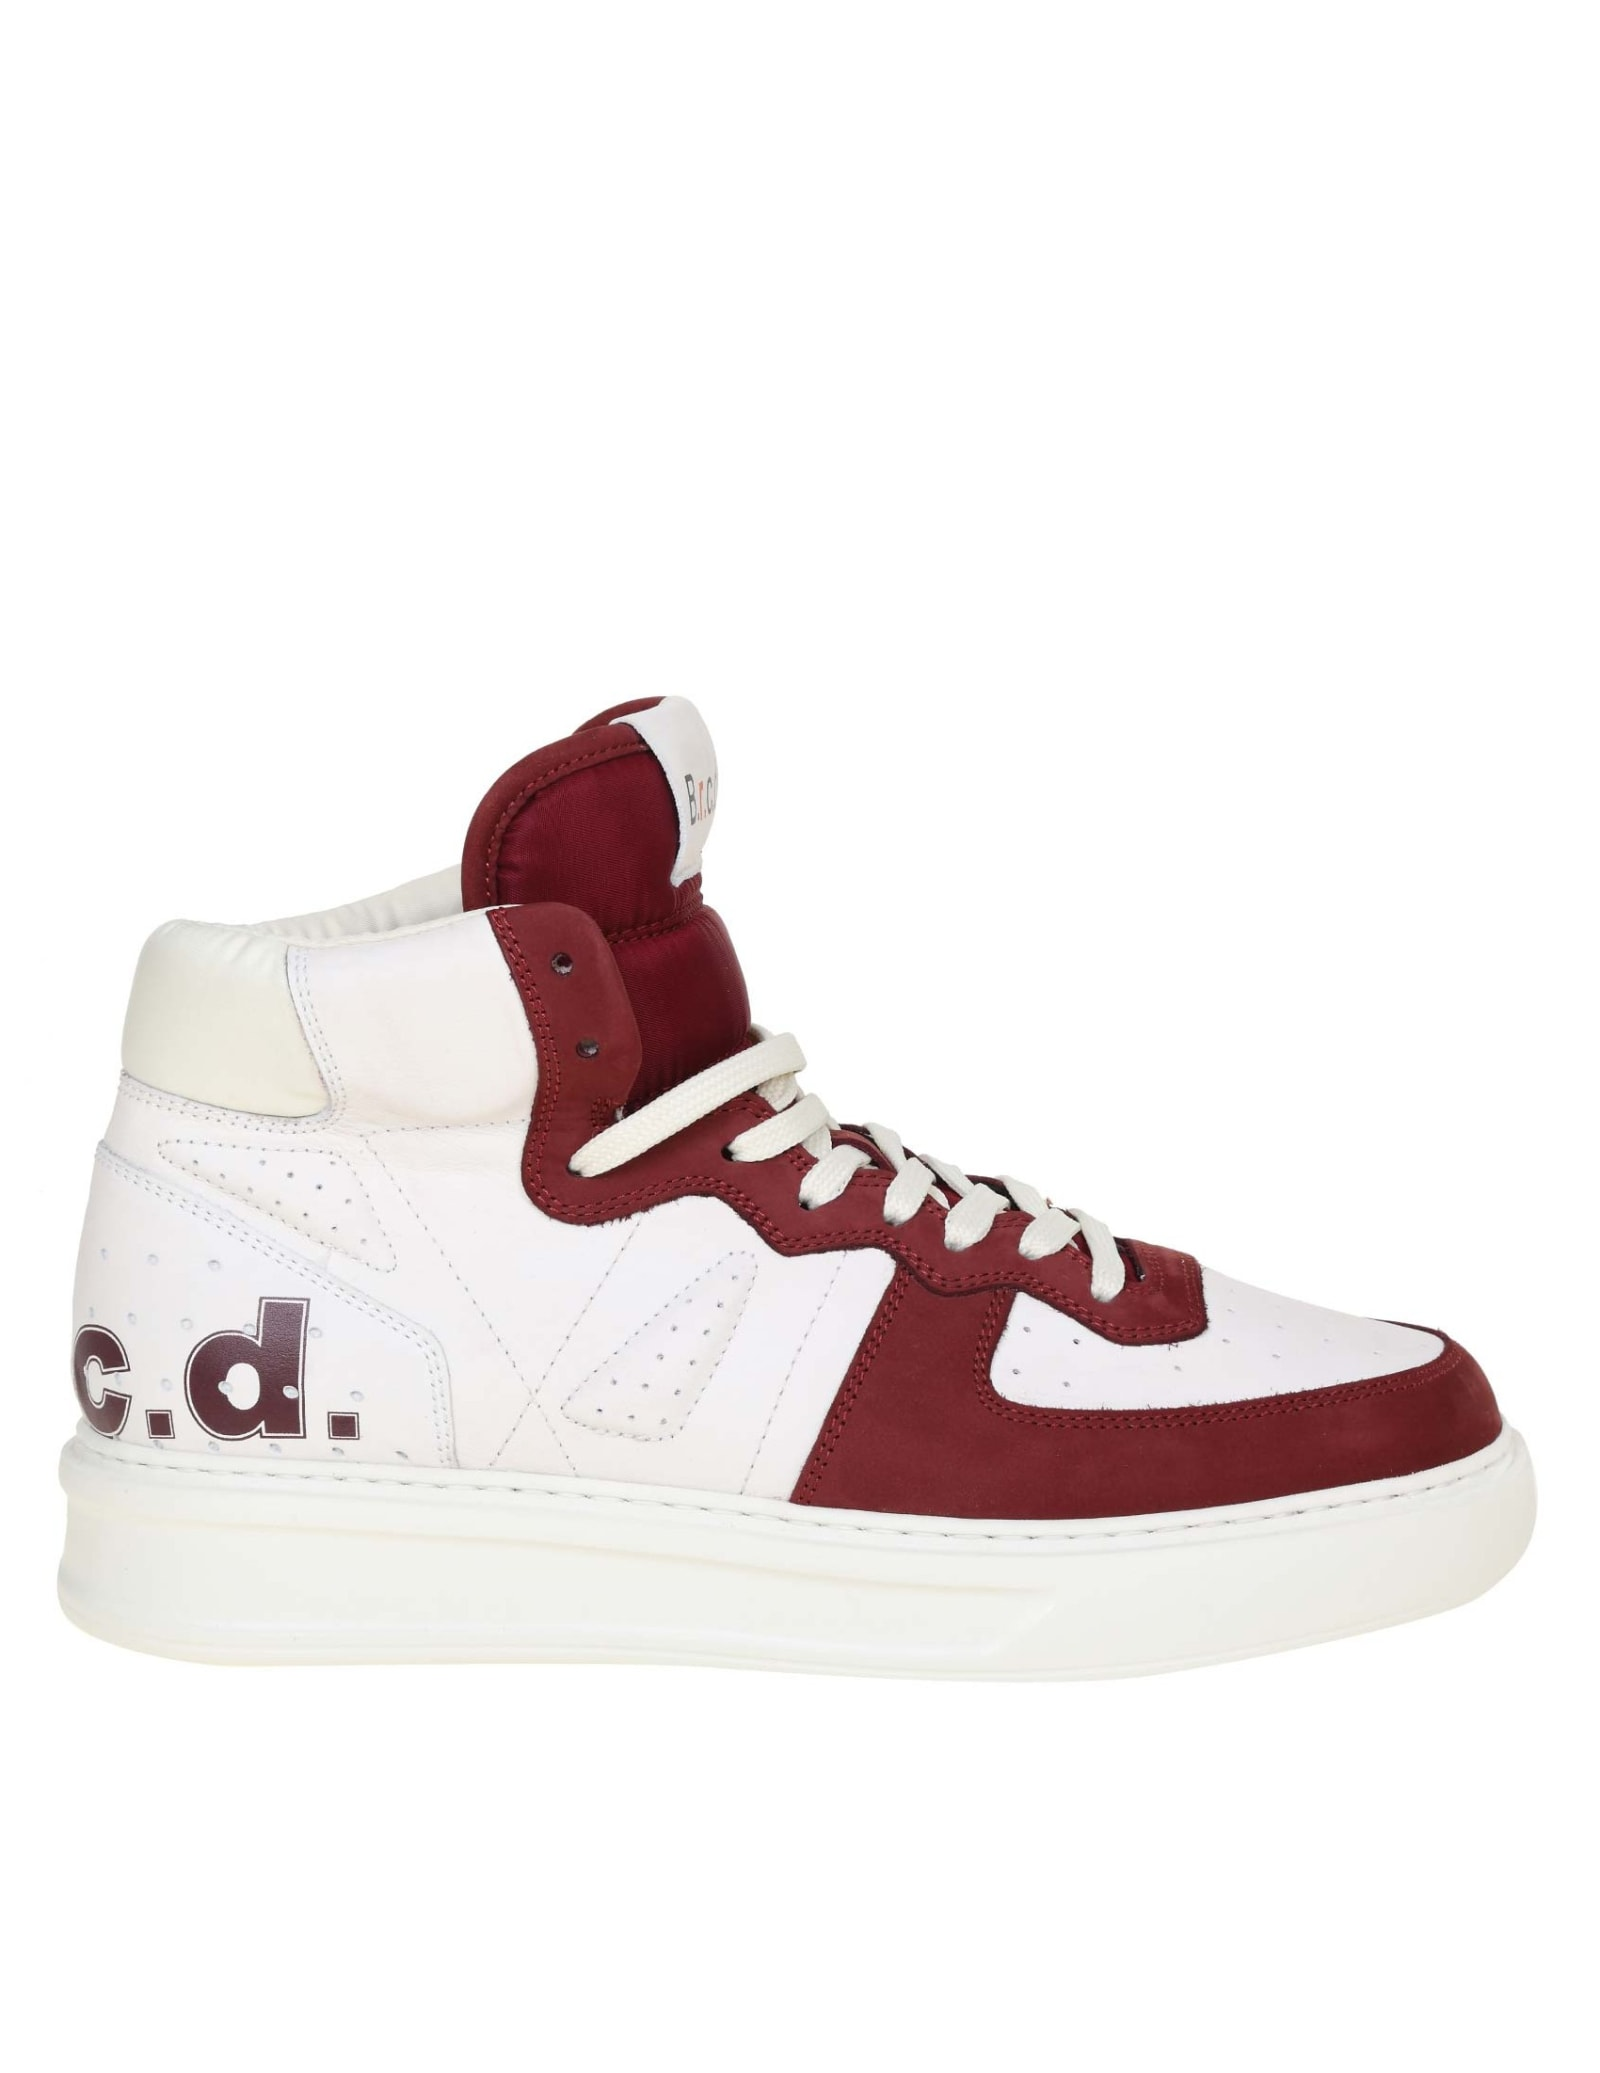 Phoenix Sneakers In White And Burgundy Leather